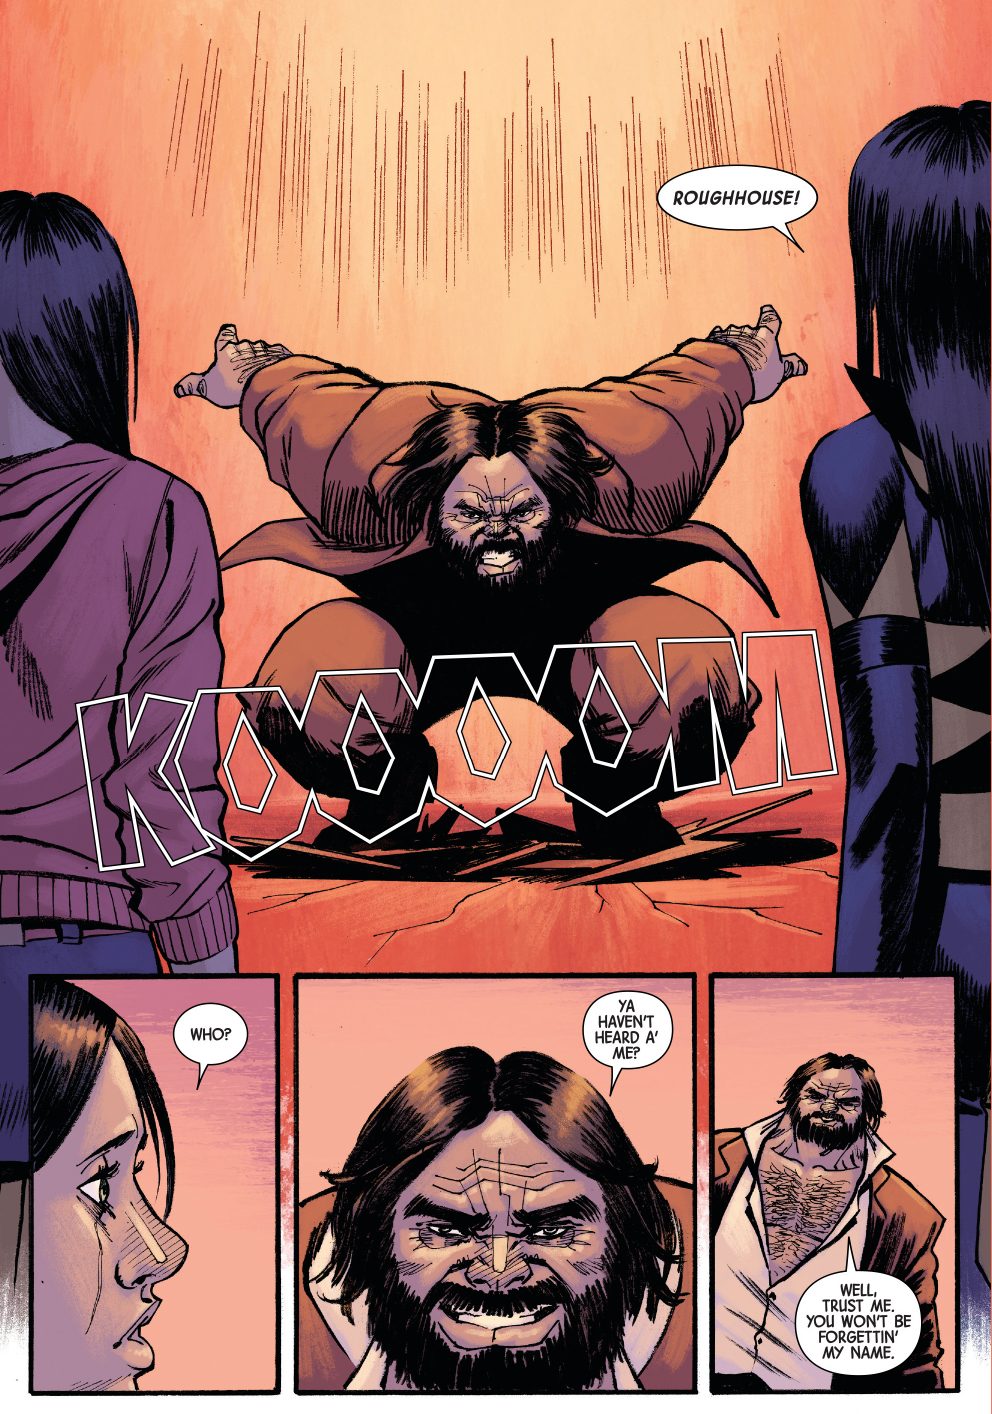 Roughhouse (All New Wolverine Vol. 1 #15)